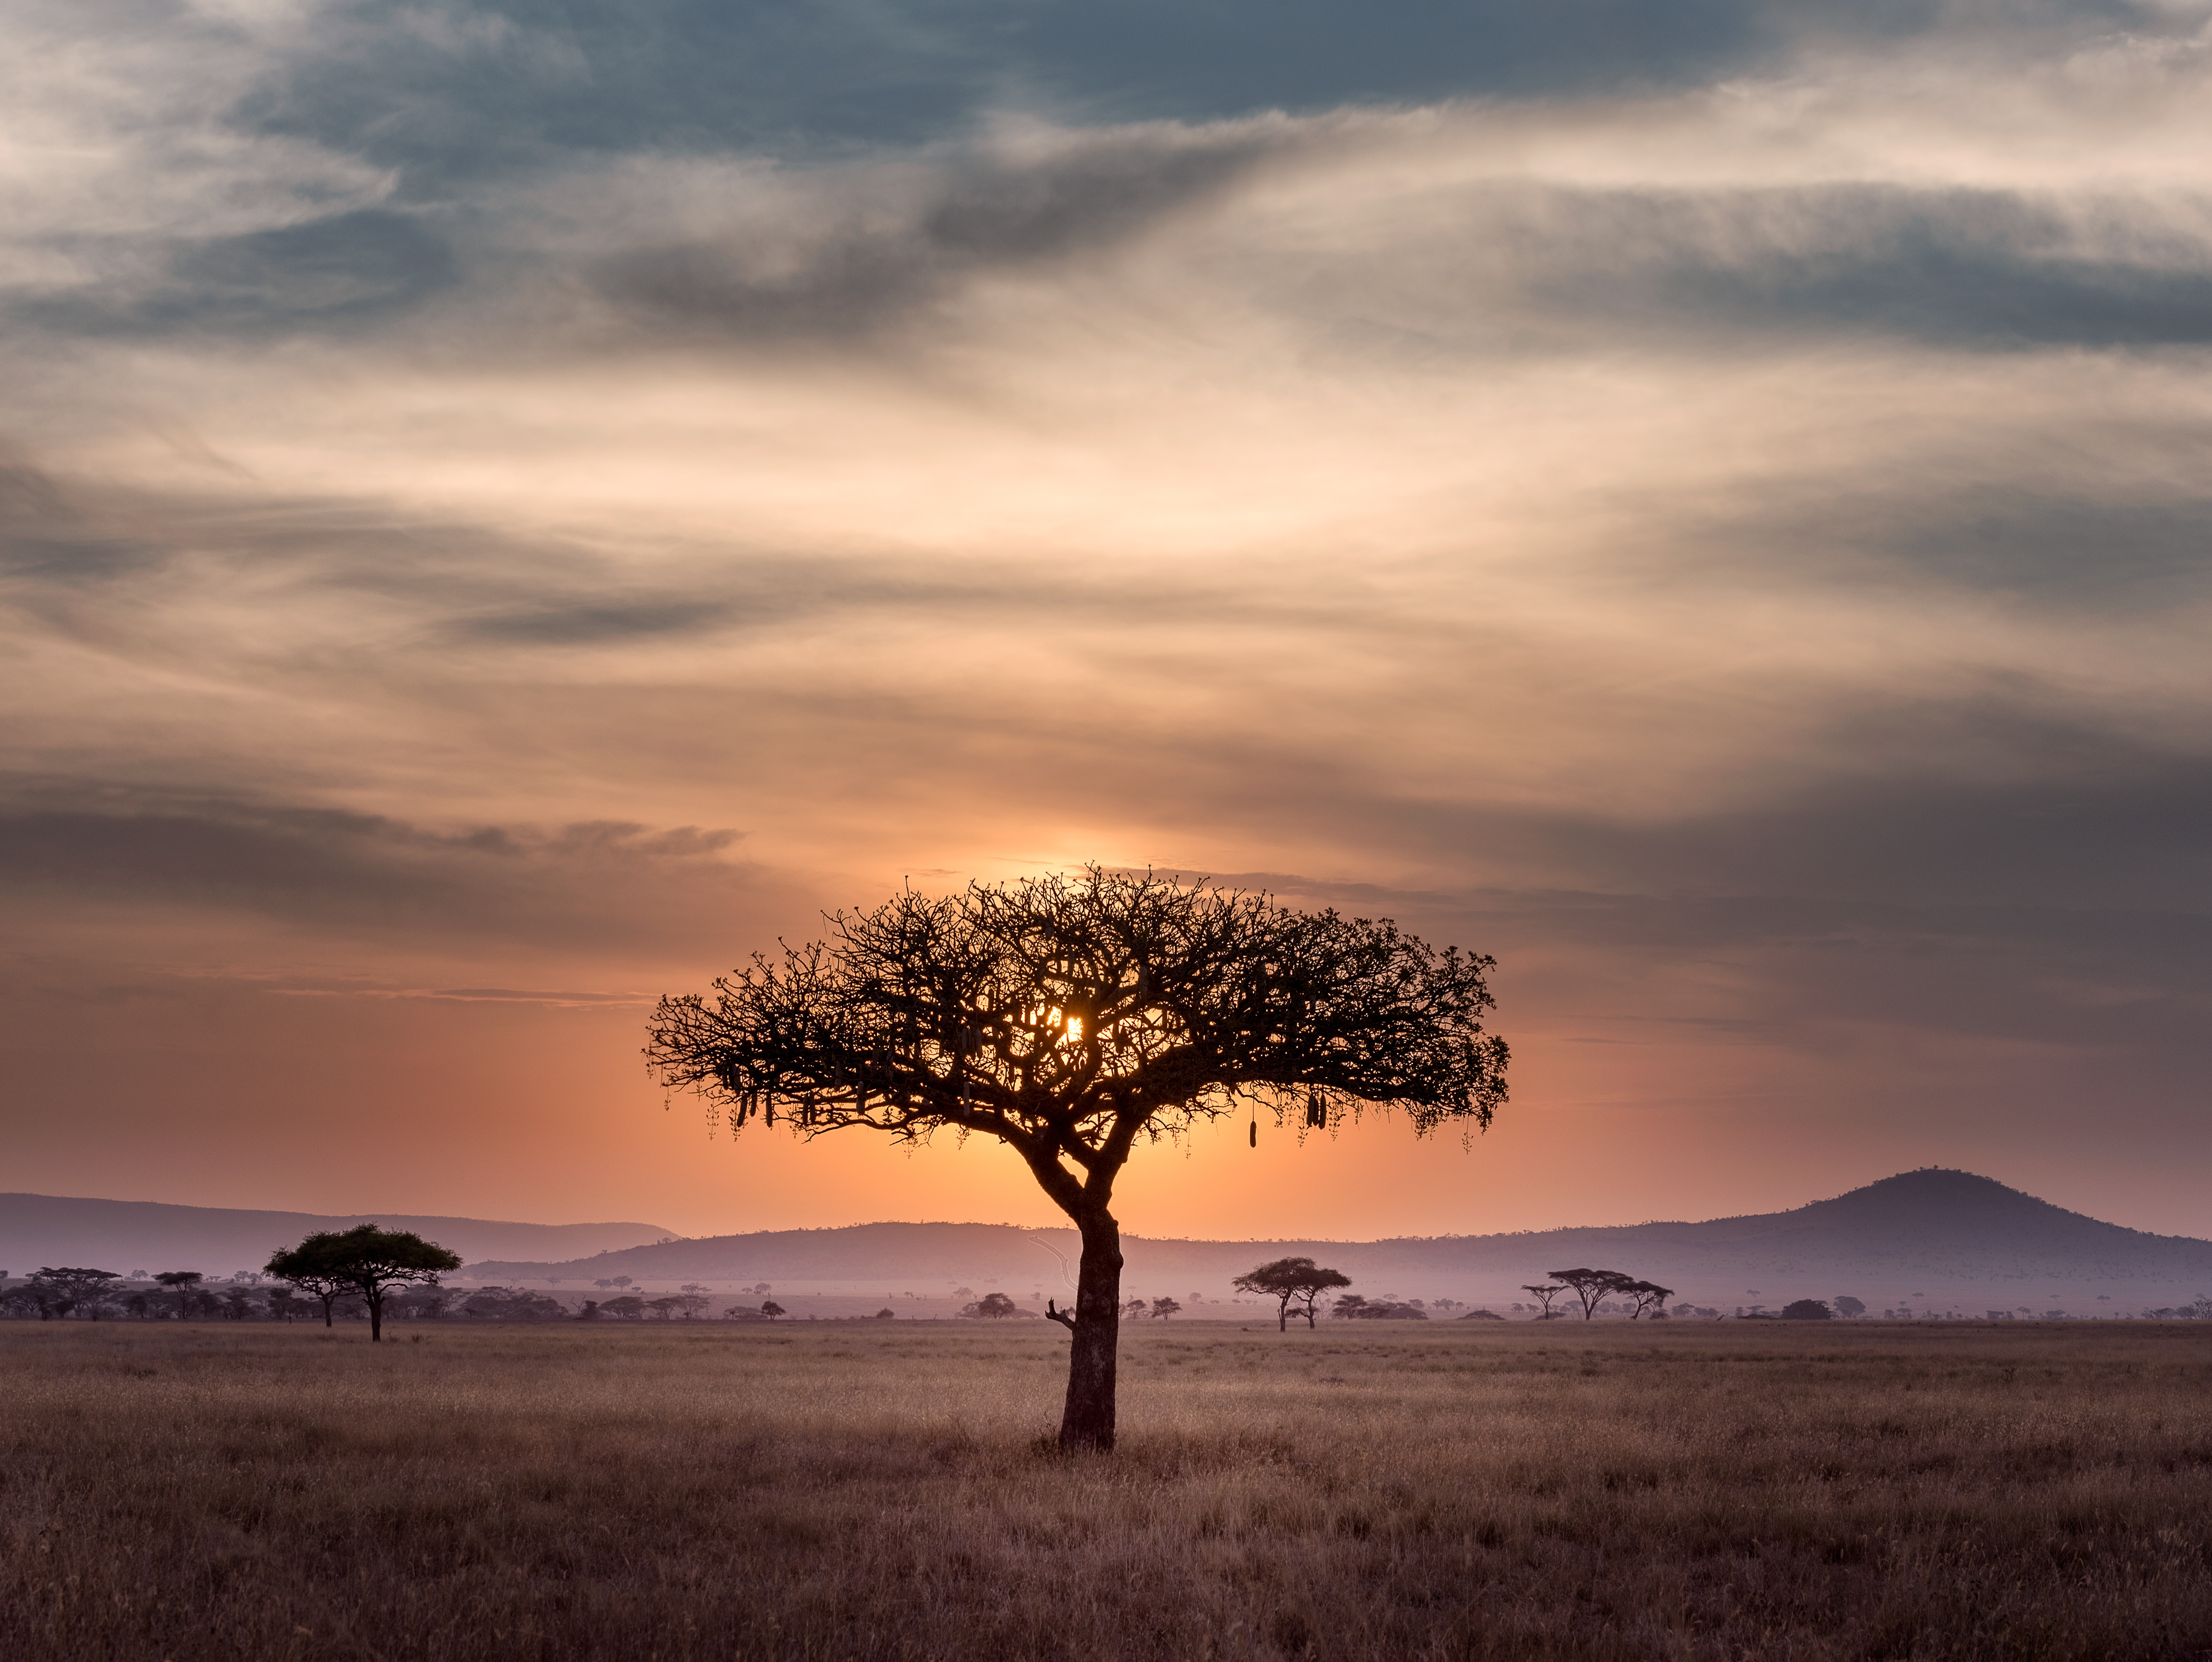 On embracing the gifts of Africa